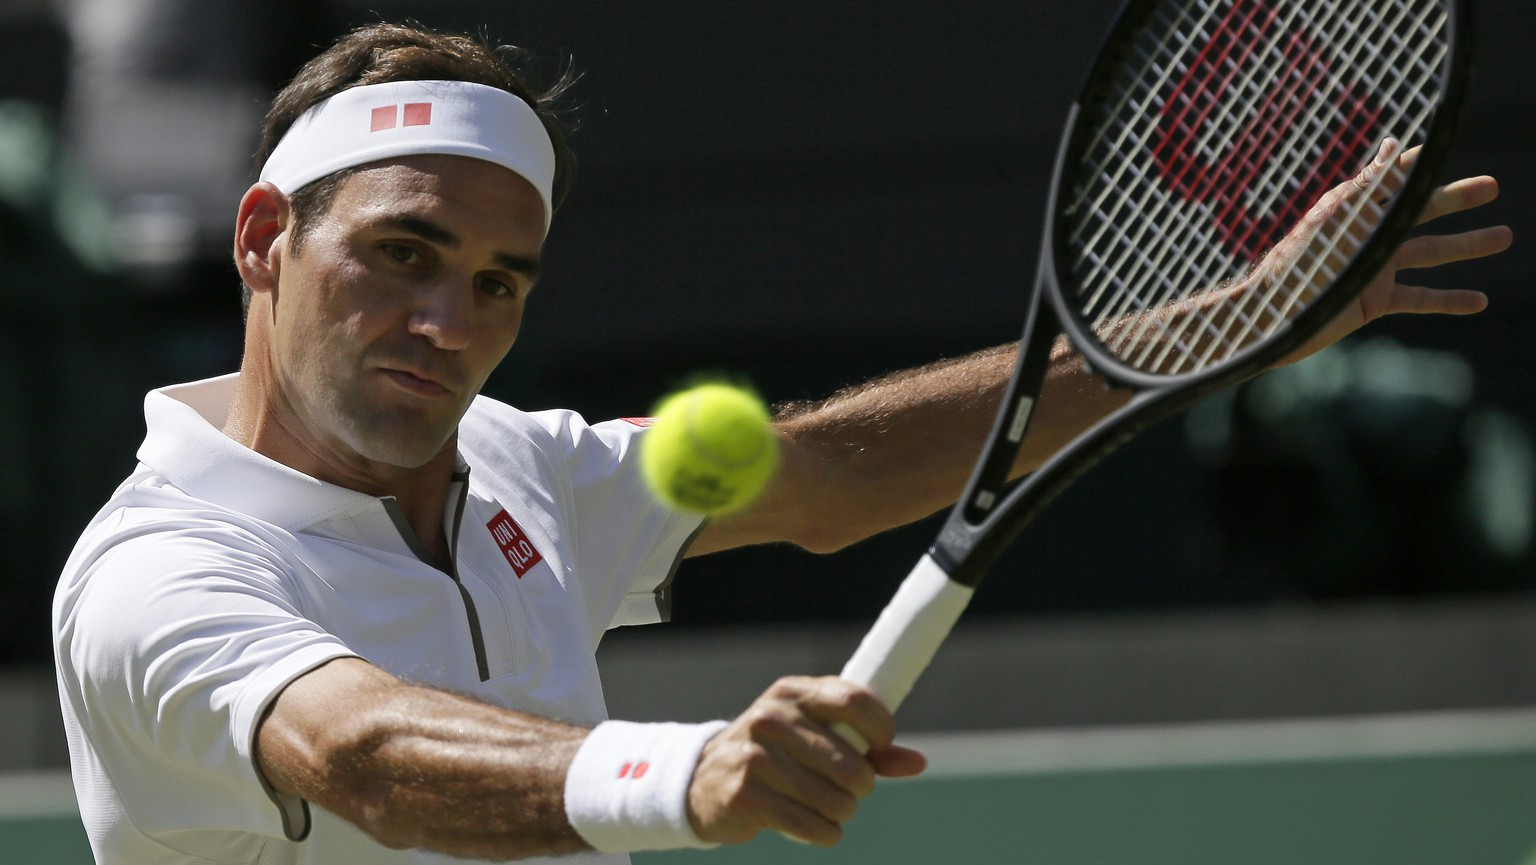 Switzerland's Roger Federer returns to Britain's Jay Clarke in a Men's singles match during day four of the Wimbledon Tennis Championships in London, Thursday, July 4, 2019. (AP Photo/Tim Ireland)